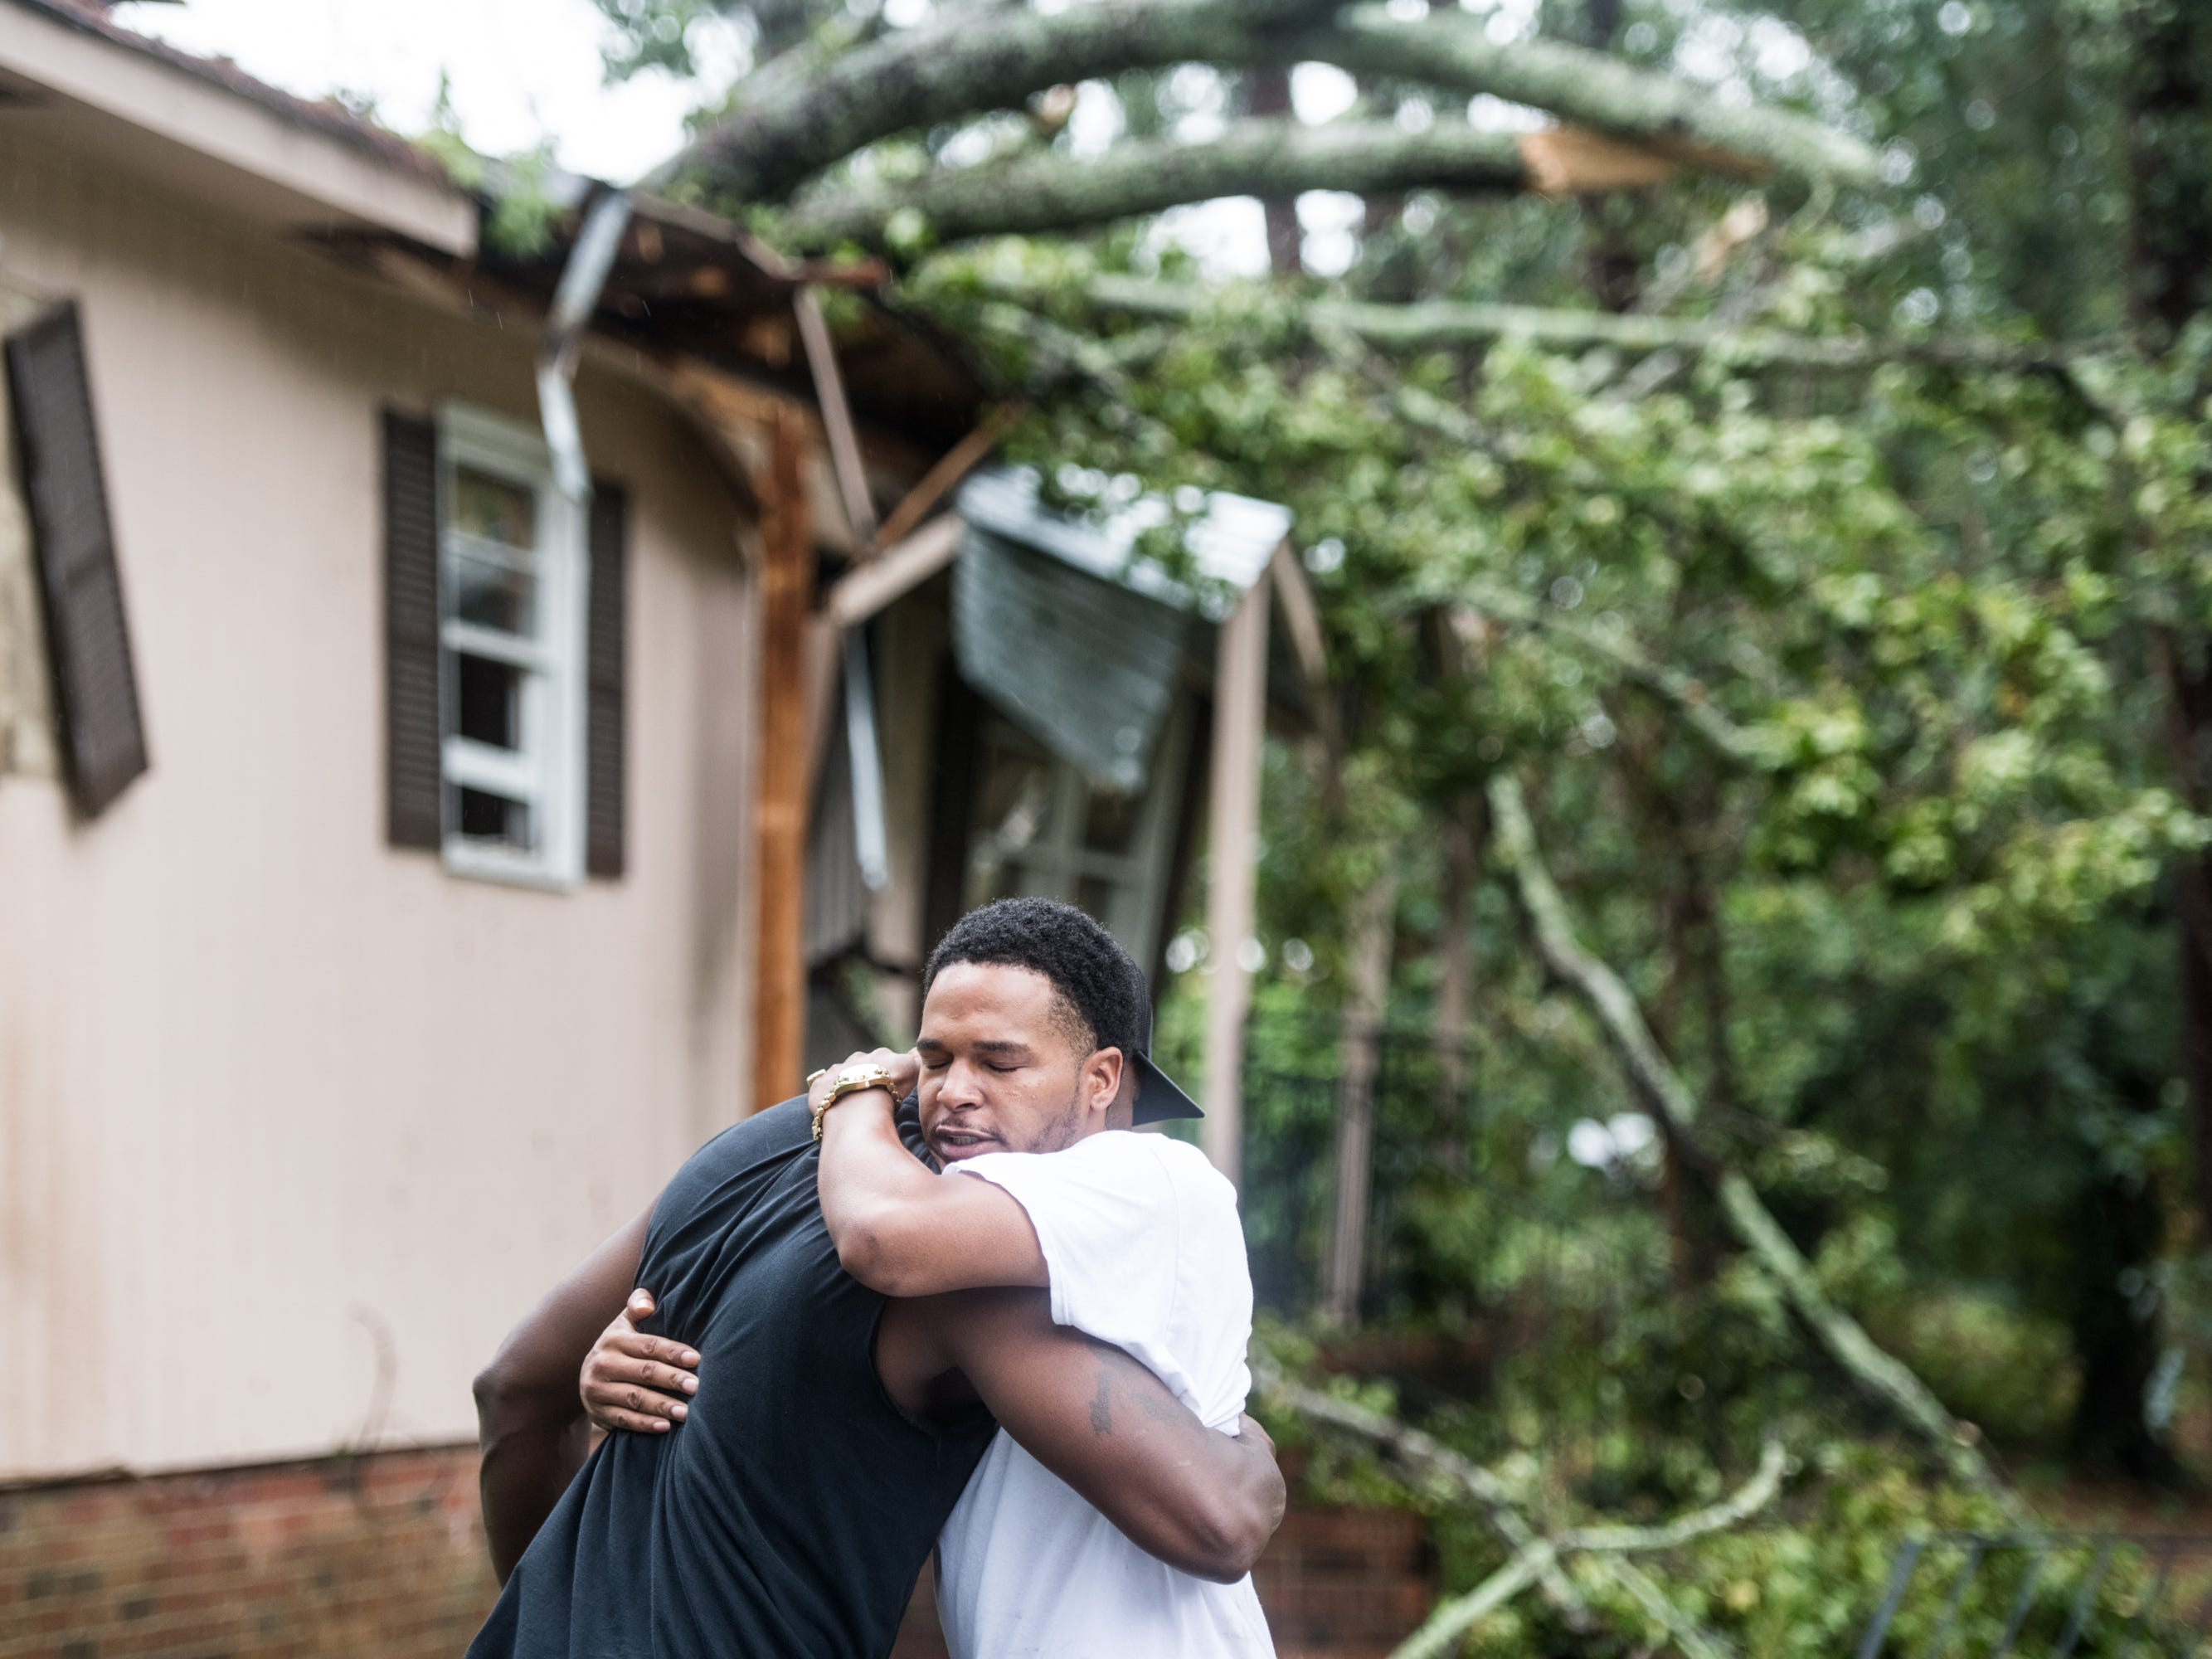 Hector Benthall, right, gets a hug from his neighbor Keito Jordan after remnants of Hurricane Michael sent a tree crashing into Benthall's home on Oct. 11, 2018 in Columbia, South Carolina. Jordan was the first responder to the accident that sent at least one person to the hospital.